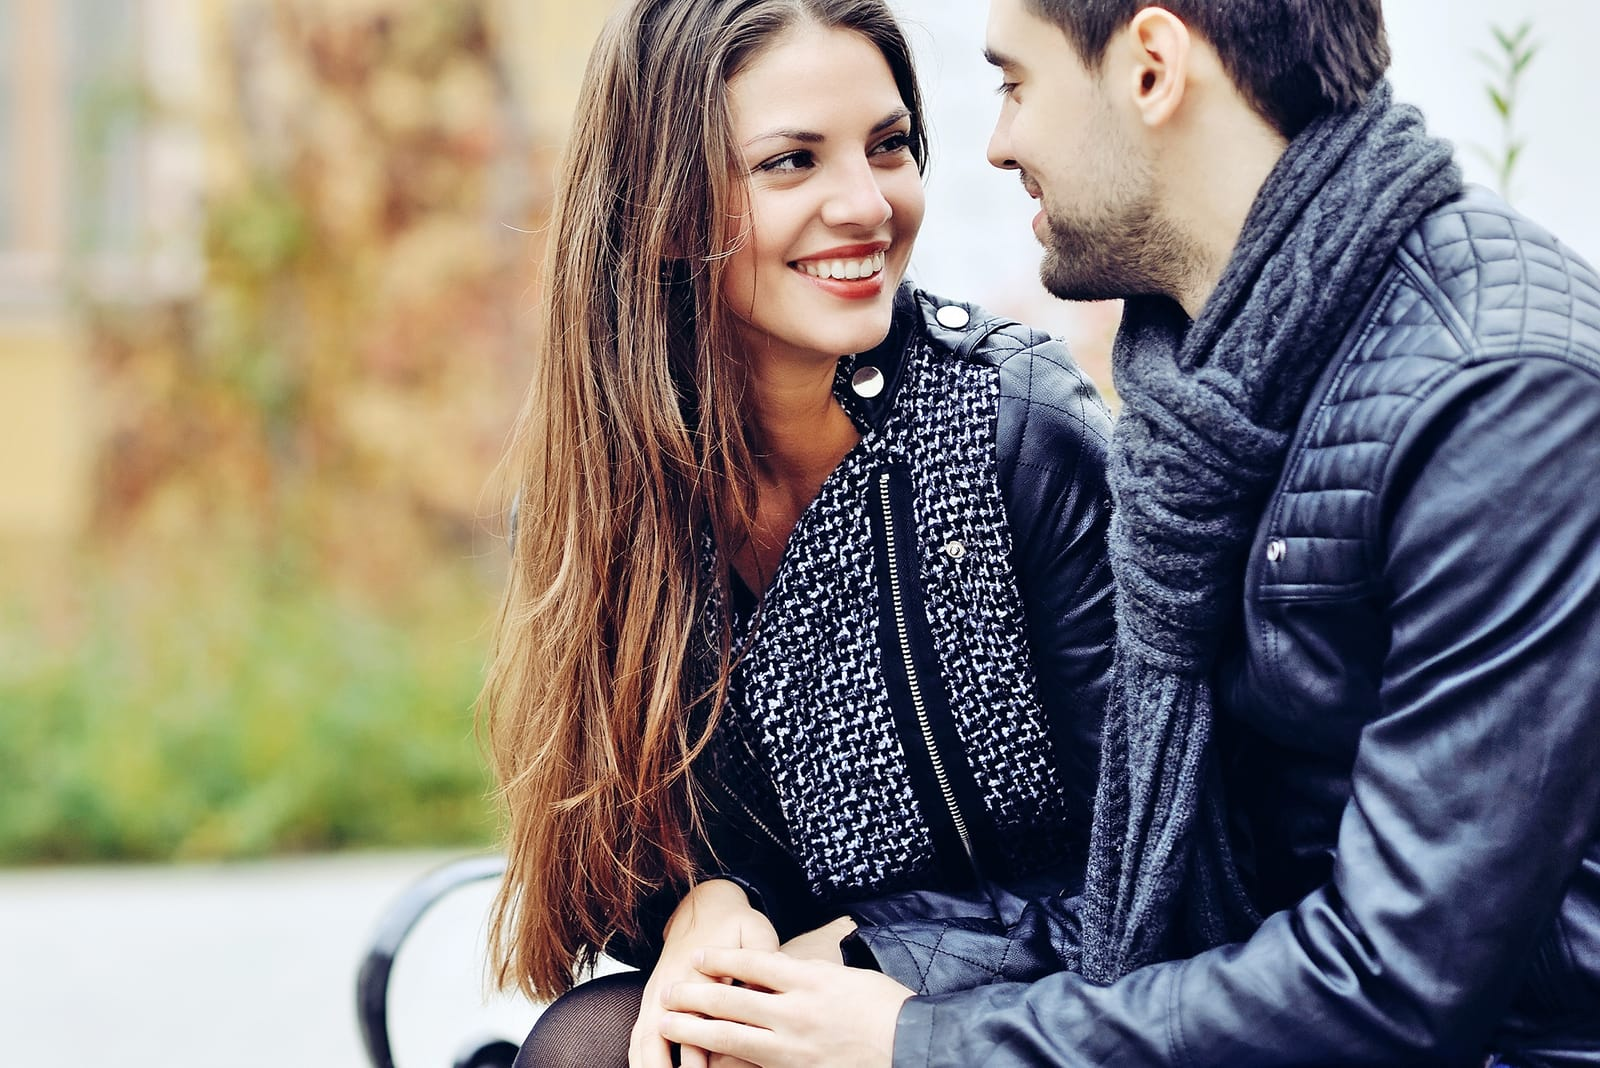 couple smiling and looking each other outdoors